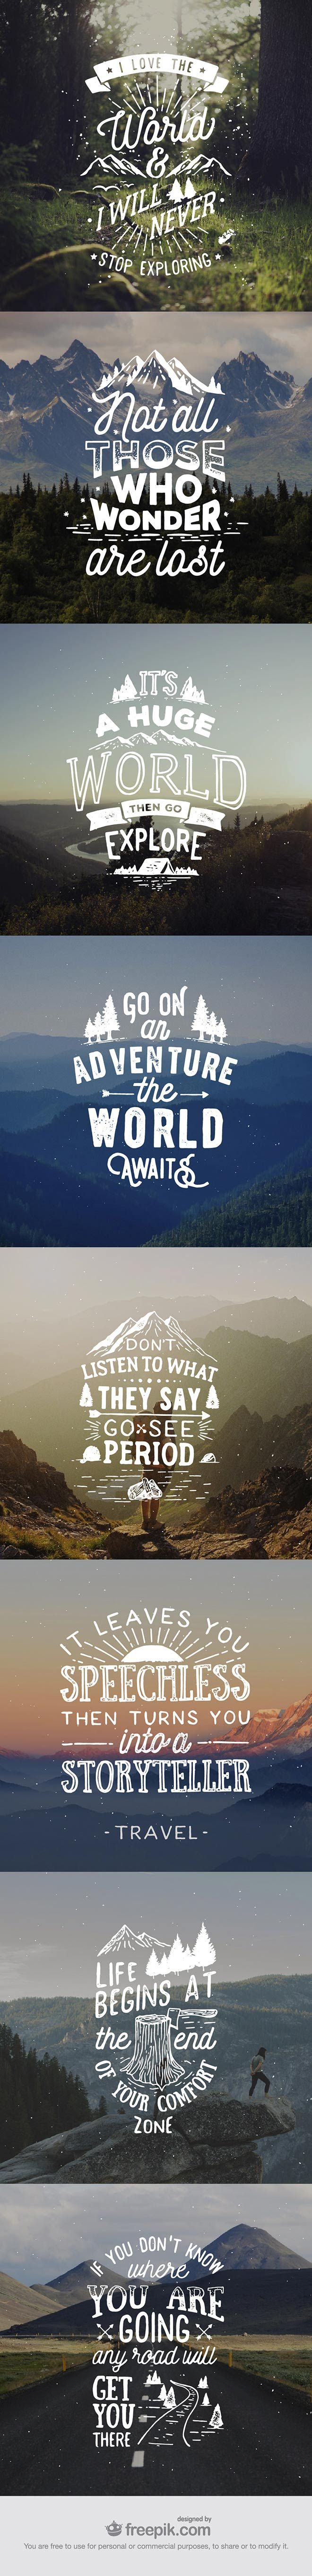 Hand Lettered Travel Quotes                                                                                                                                                                                 More